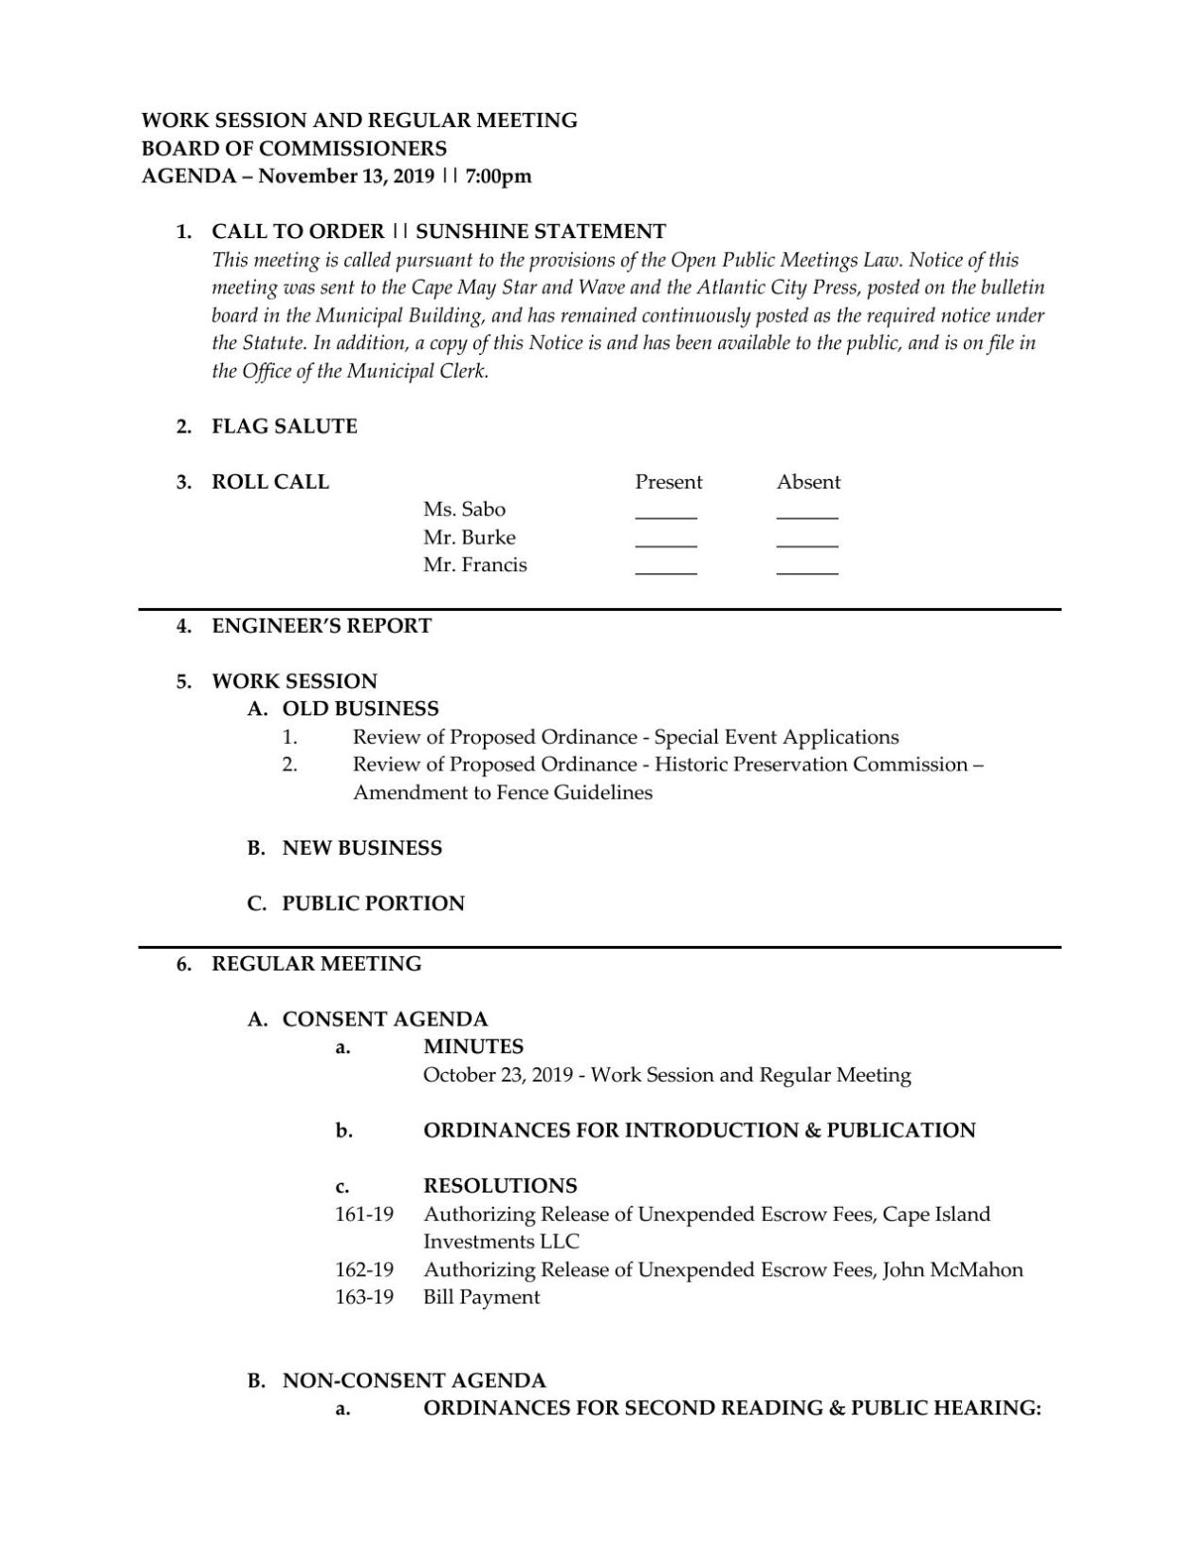 West Cape May Board of Commmissioners Agenda Nov. 13, 2019